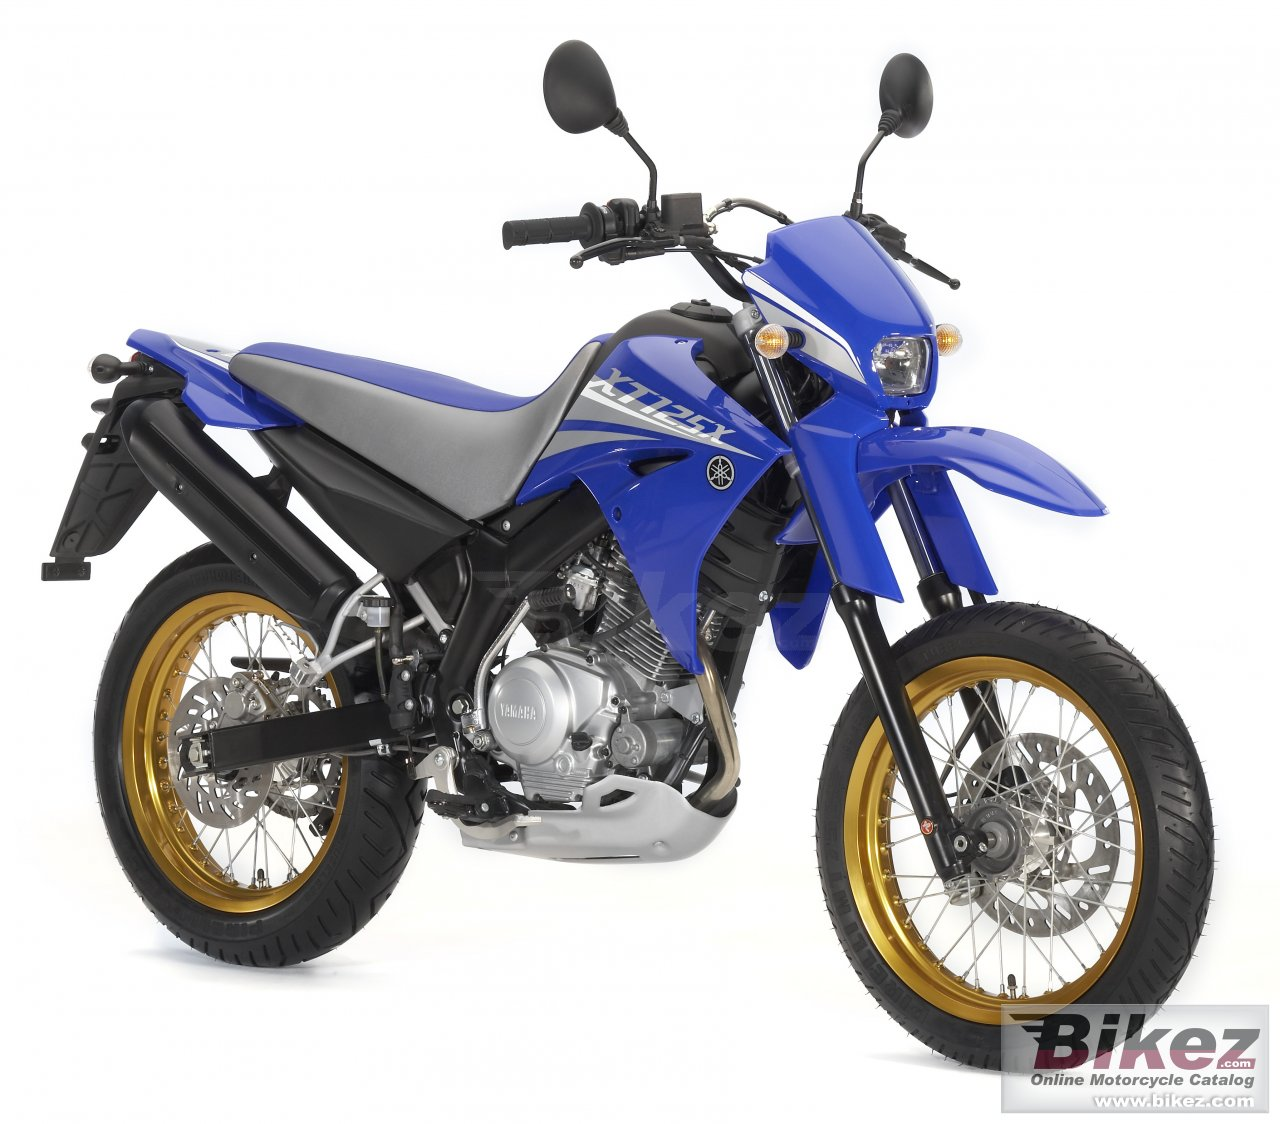 Big Yamaha xt125x picture and wallpaper from Bikez.com